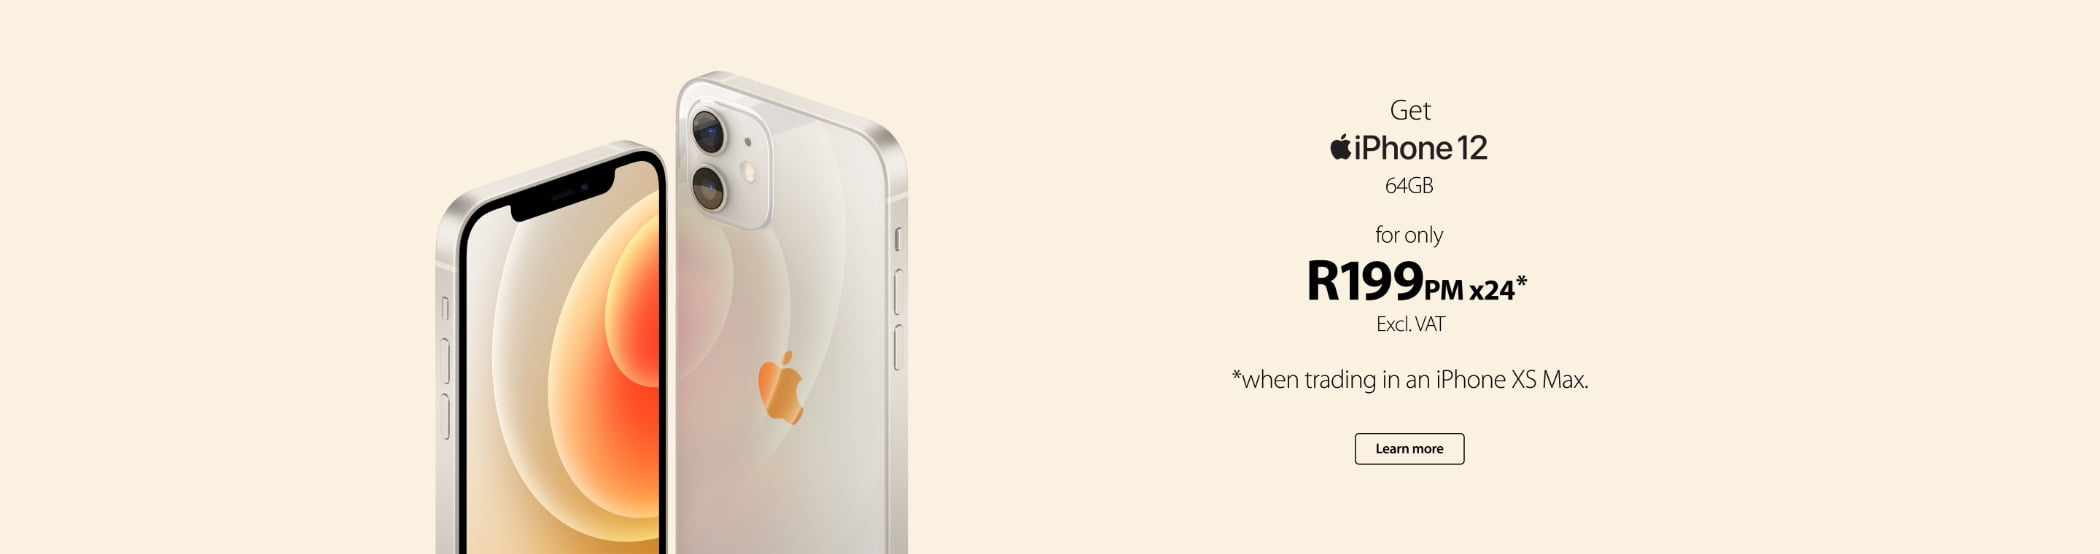 Portable communications device, Mobile phone, Telephony, Gesture, Rectangle, Font